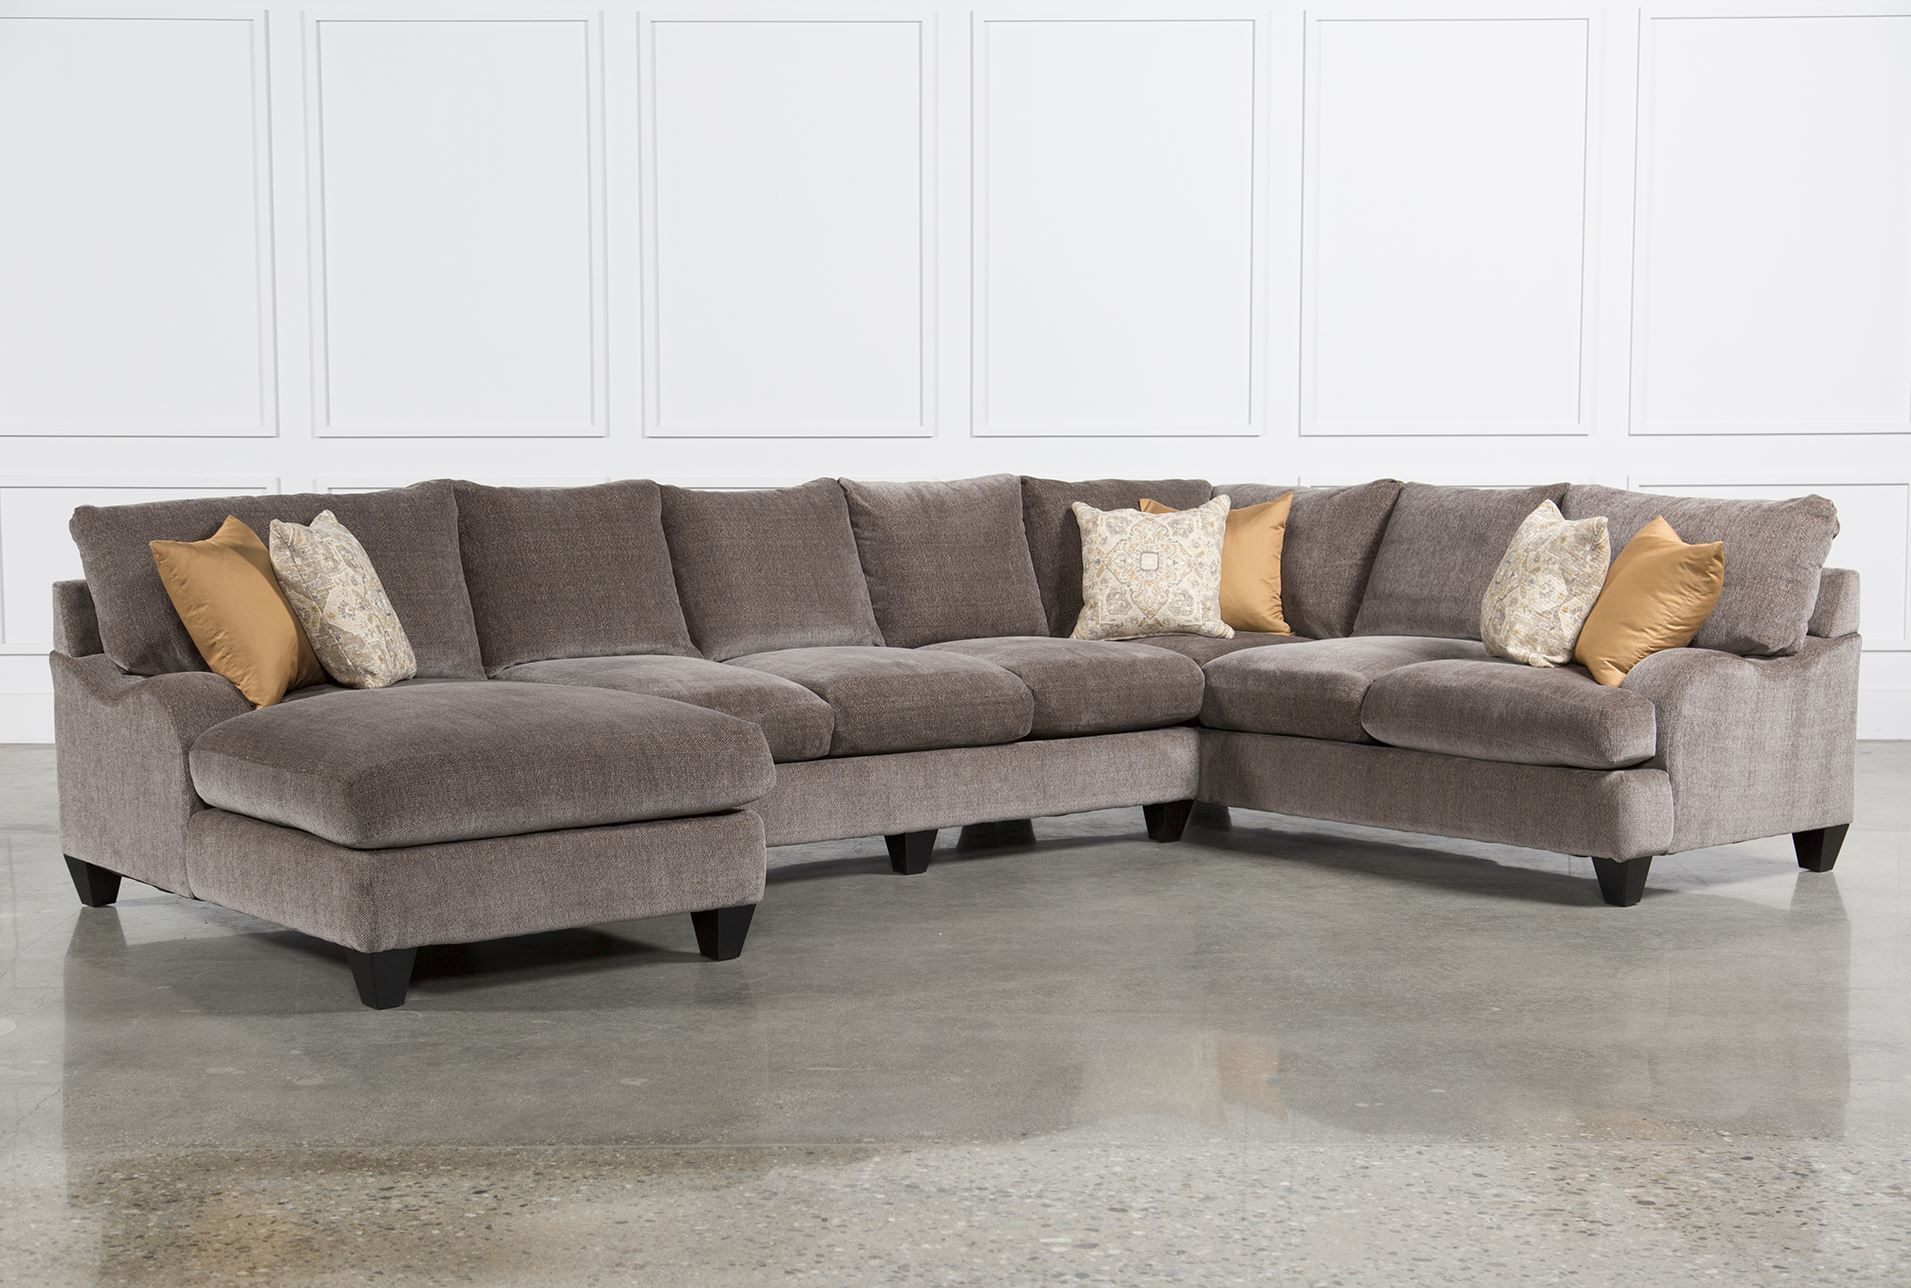 Pryce 3 Piece Sectional W/Laf Chaise - Living Spaces   New Home ...